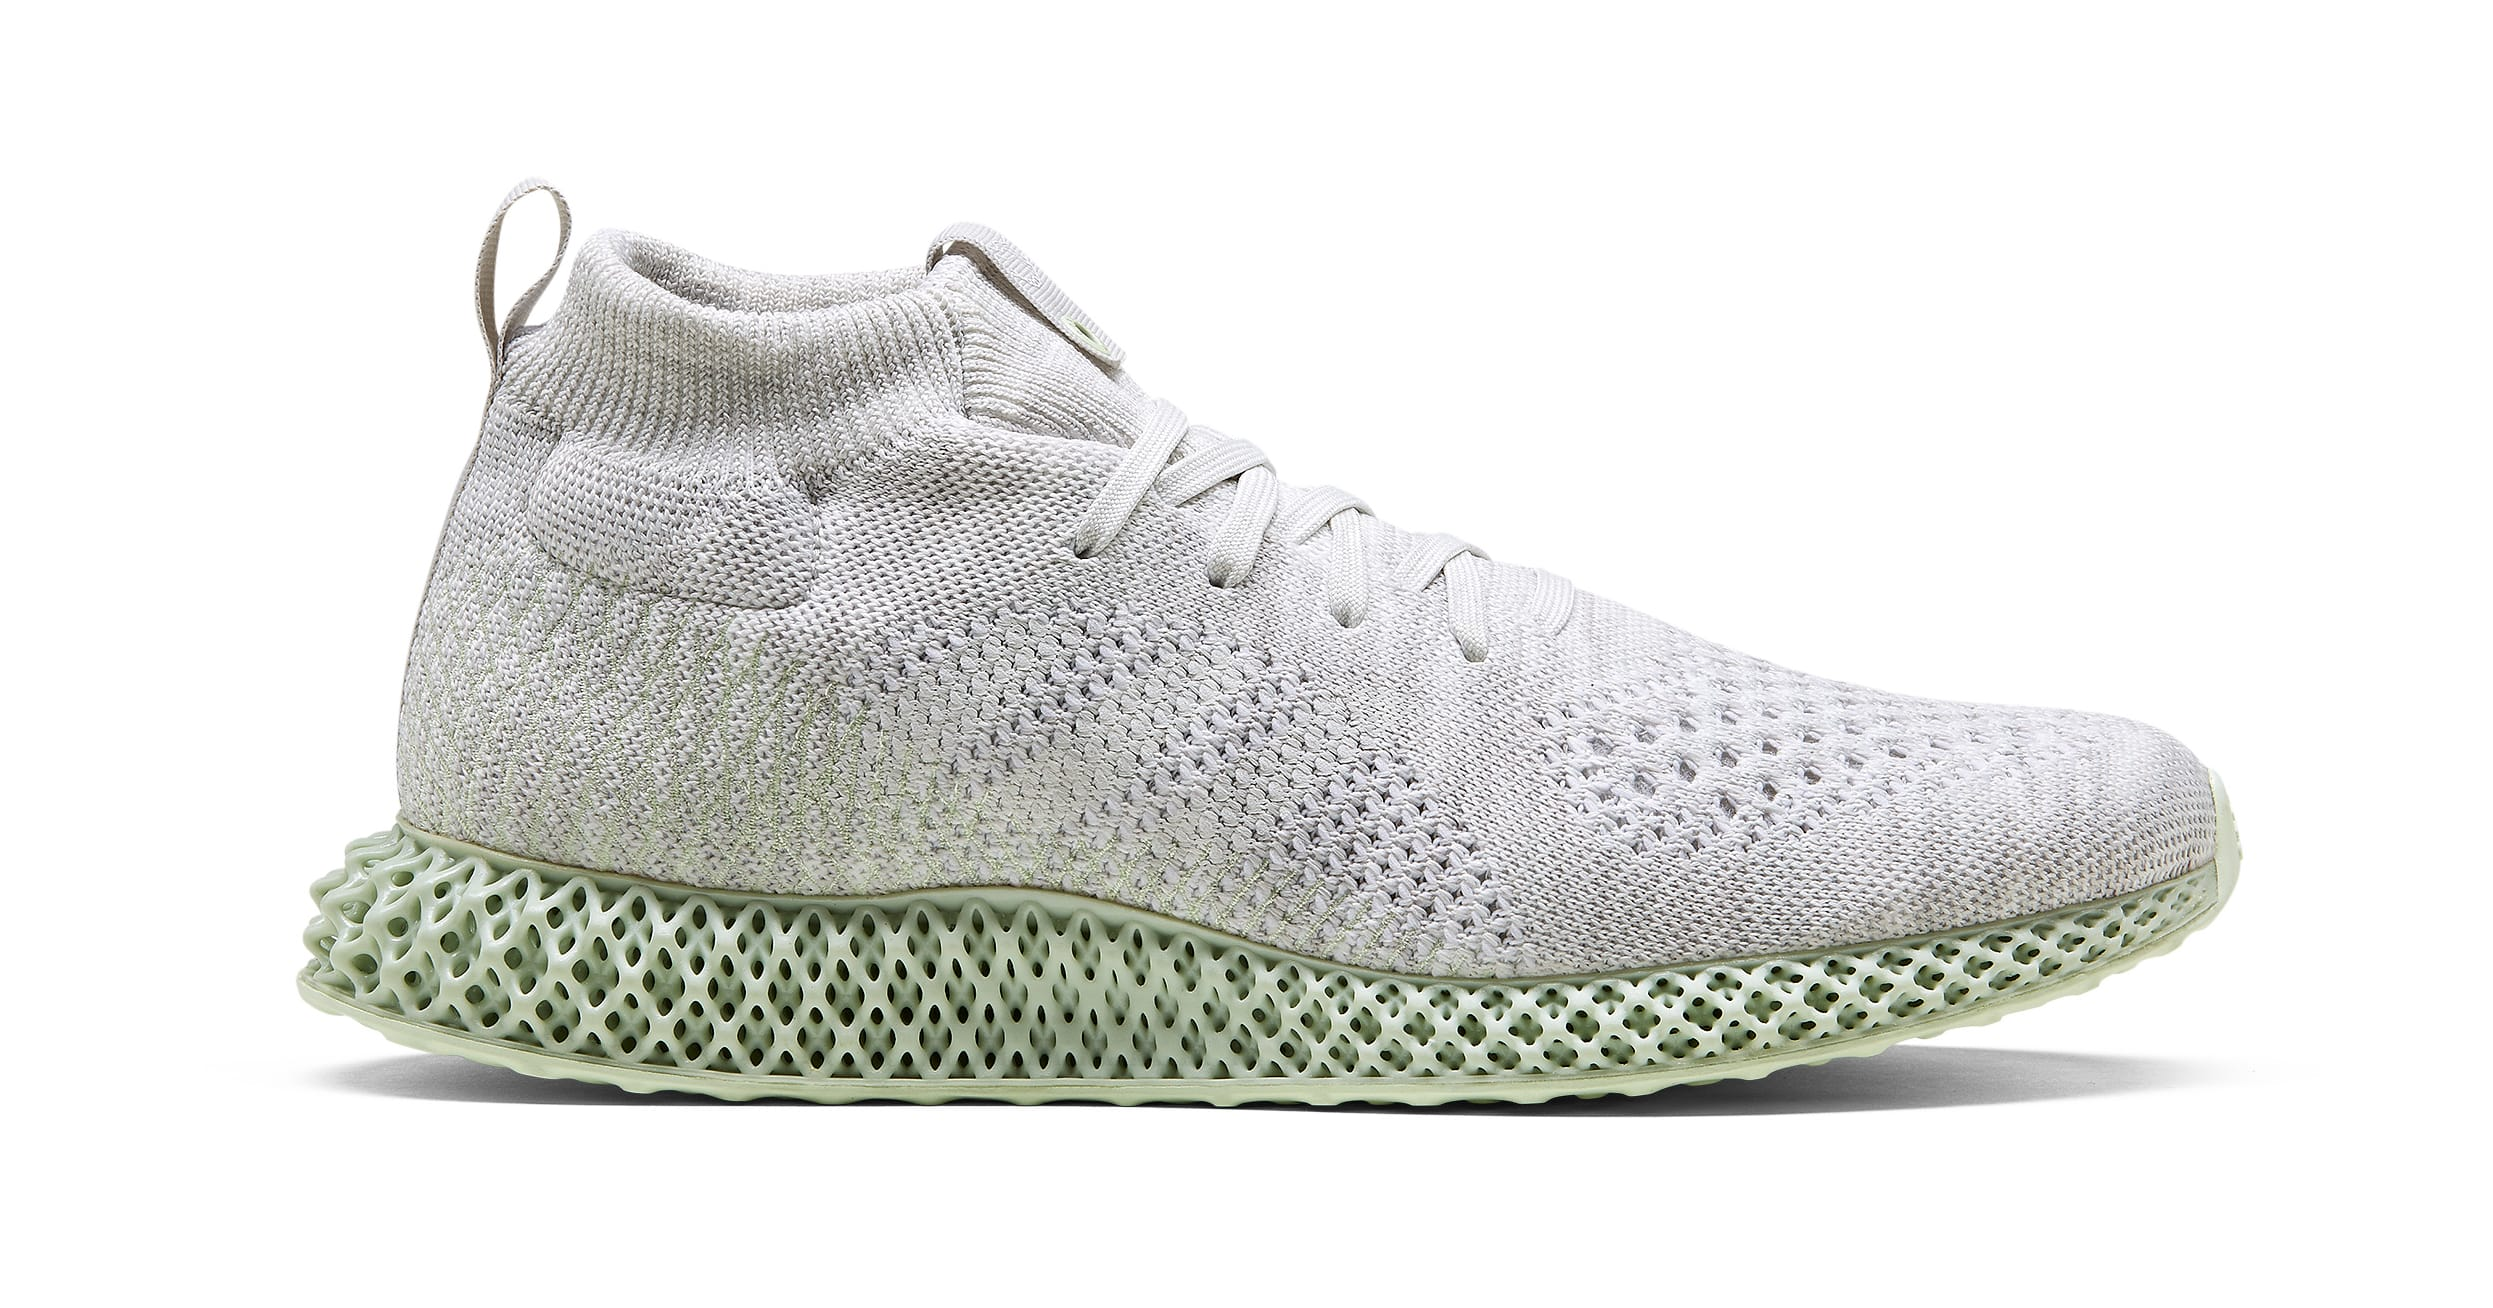 Adidas Consortium Runner 4D Mid EE4116 (Lateral)